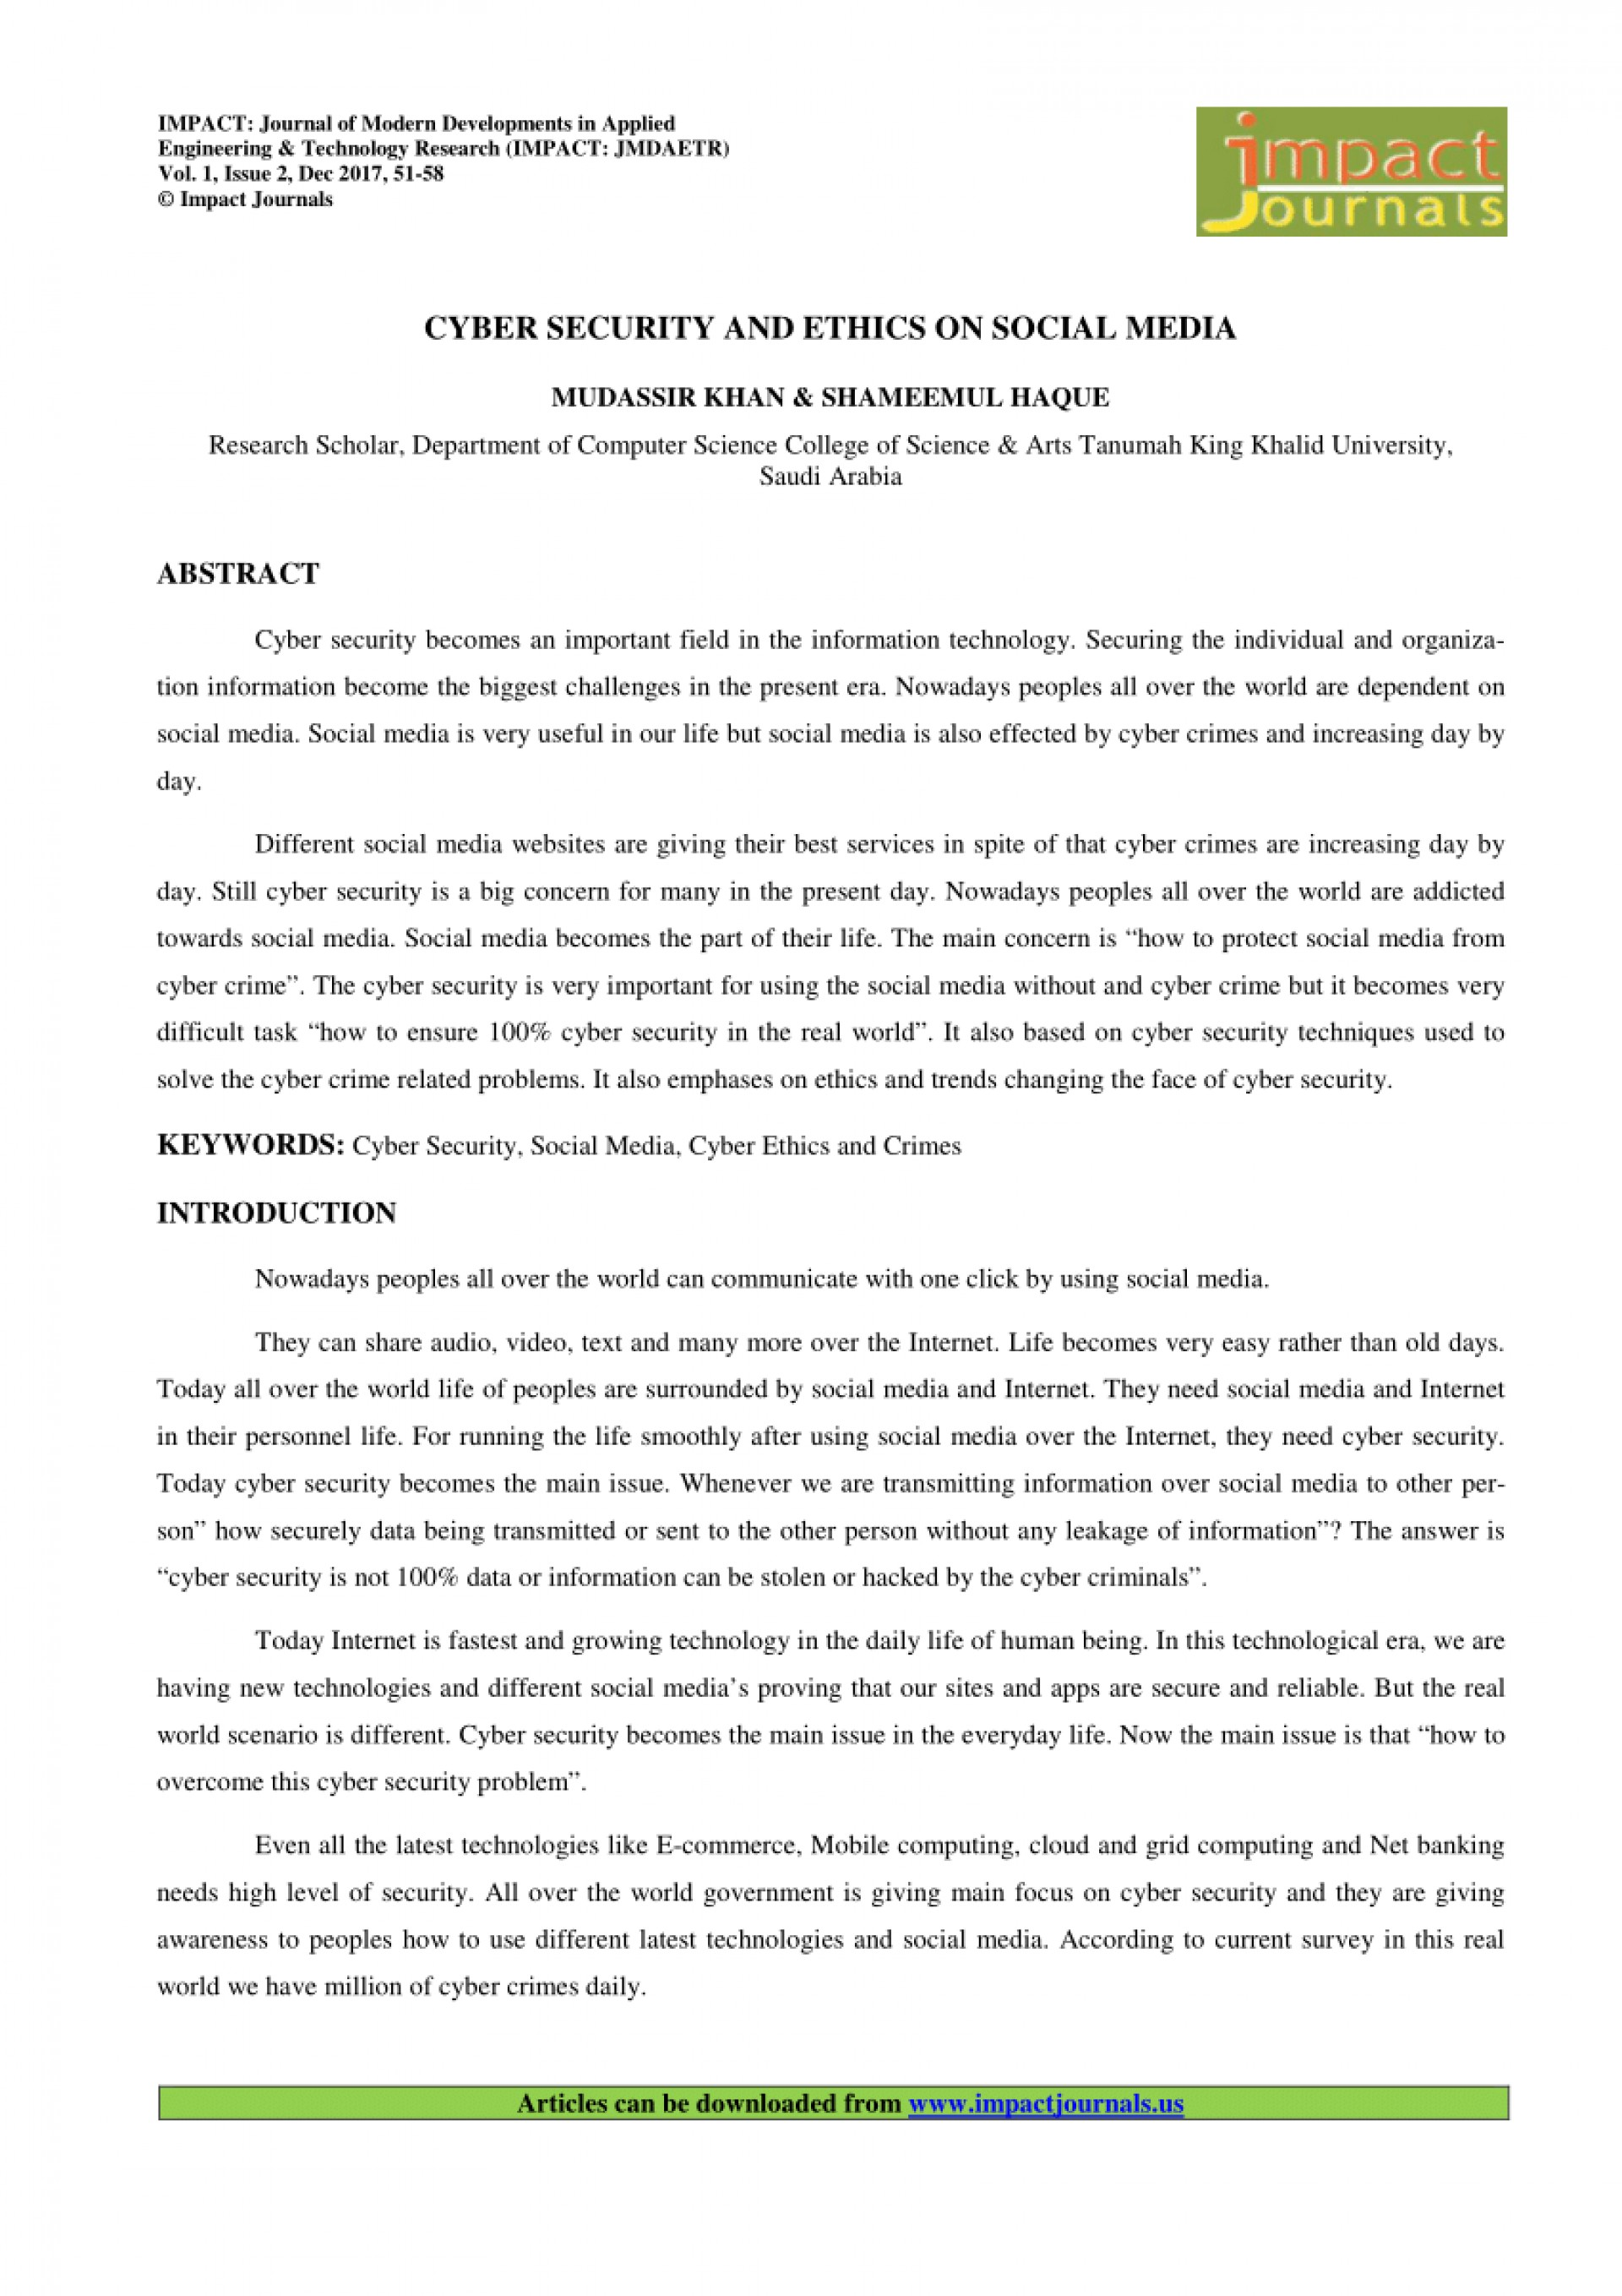 011 Research Papers On Cyber Security Paper Wonderful In E Commerce Topics Pdf 1920